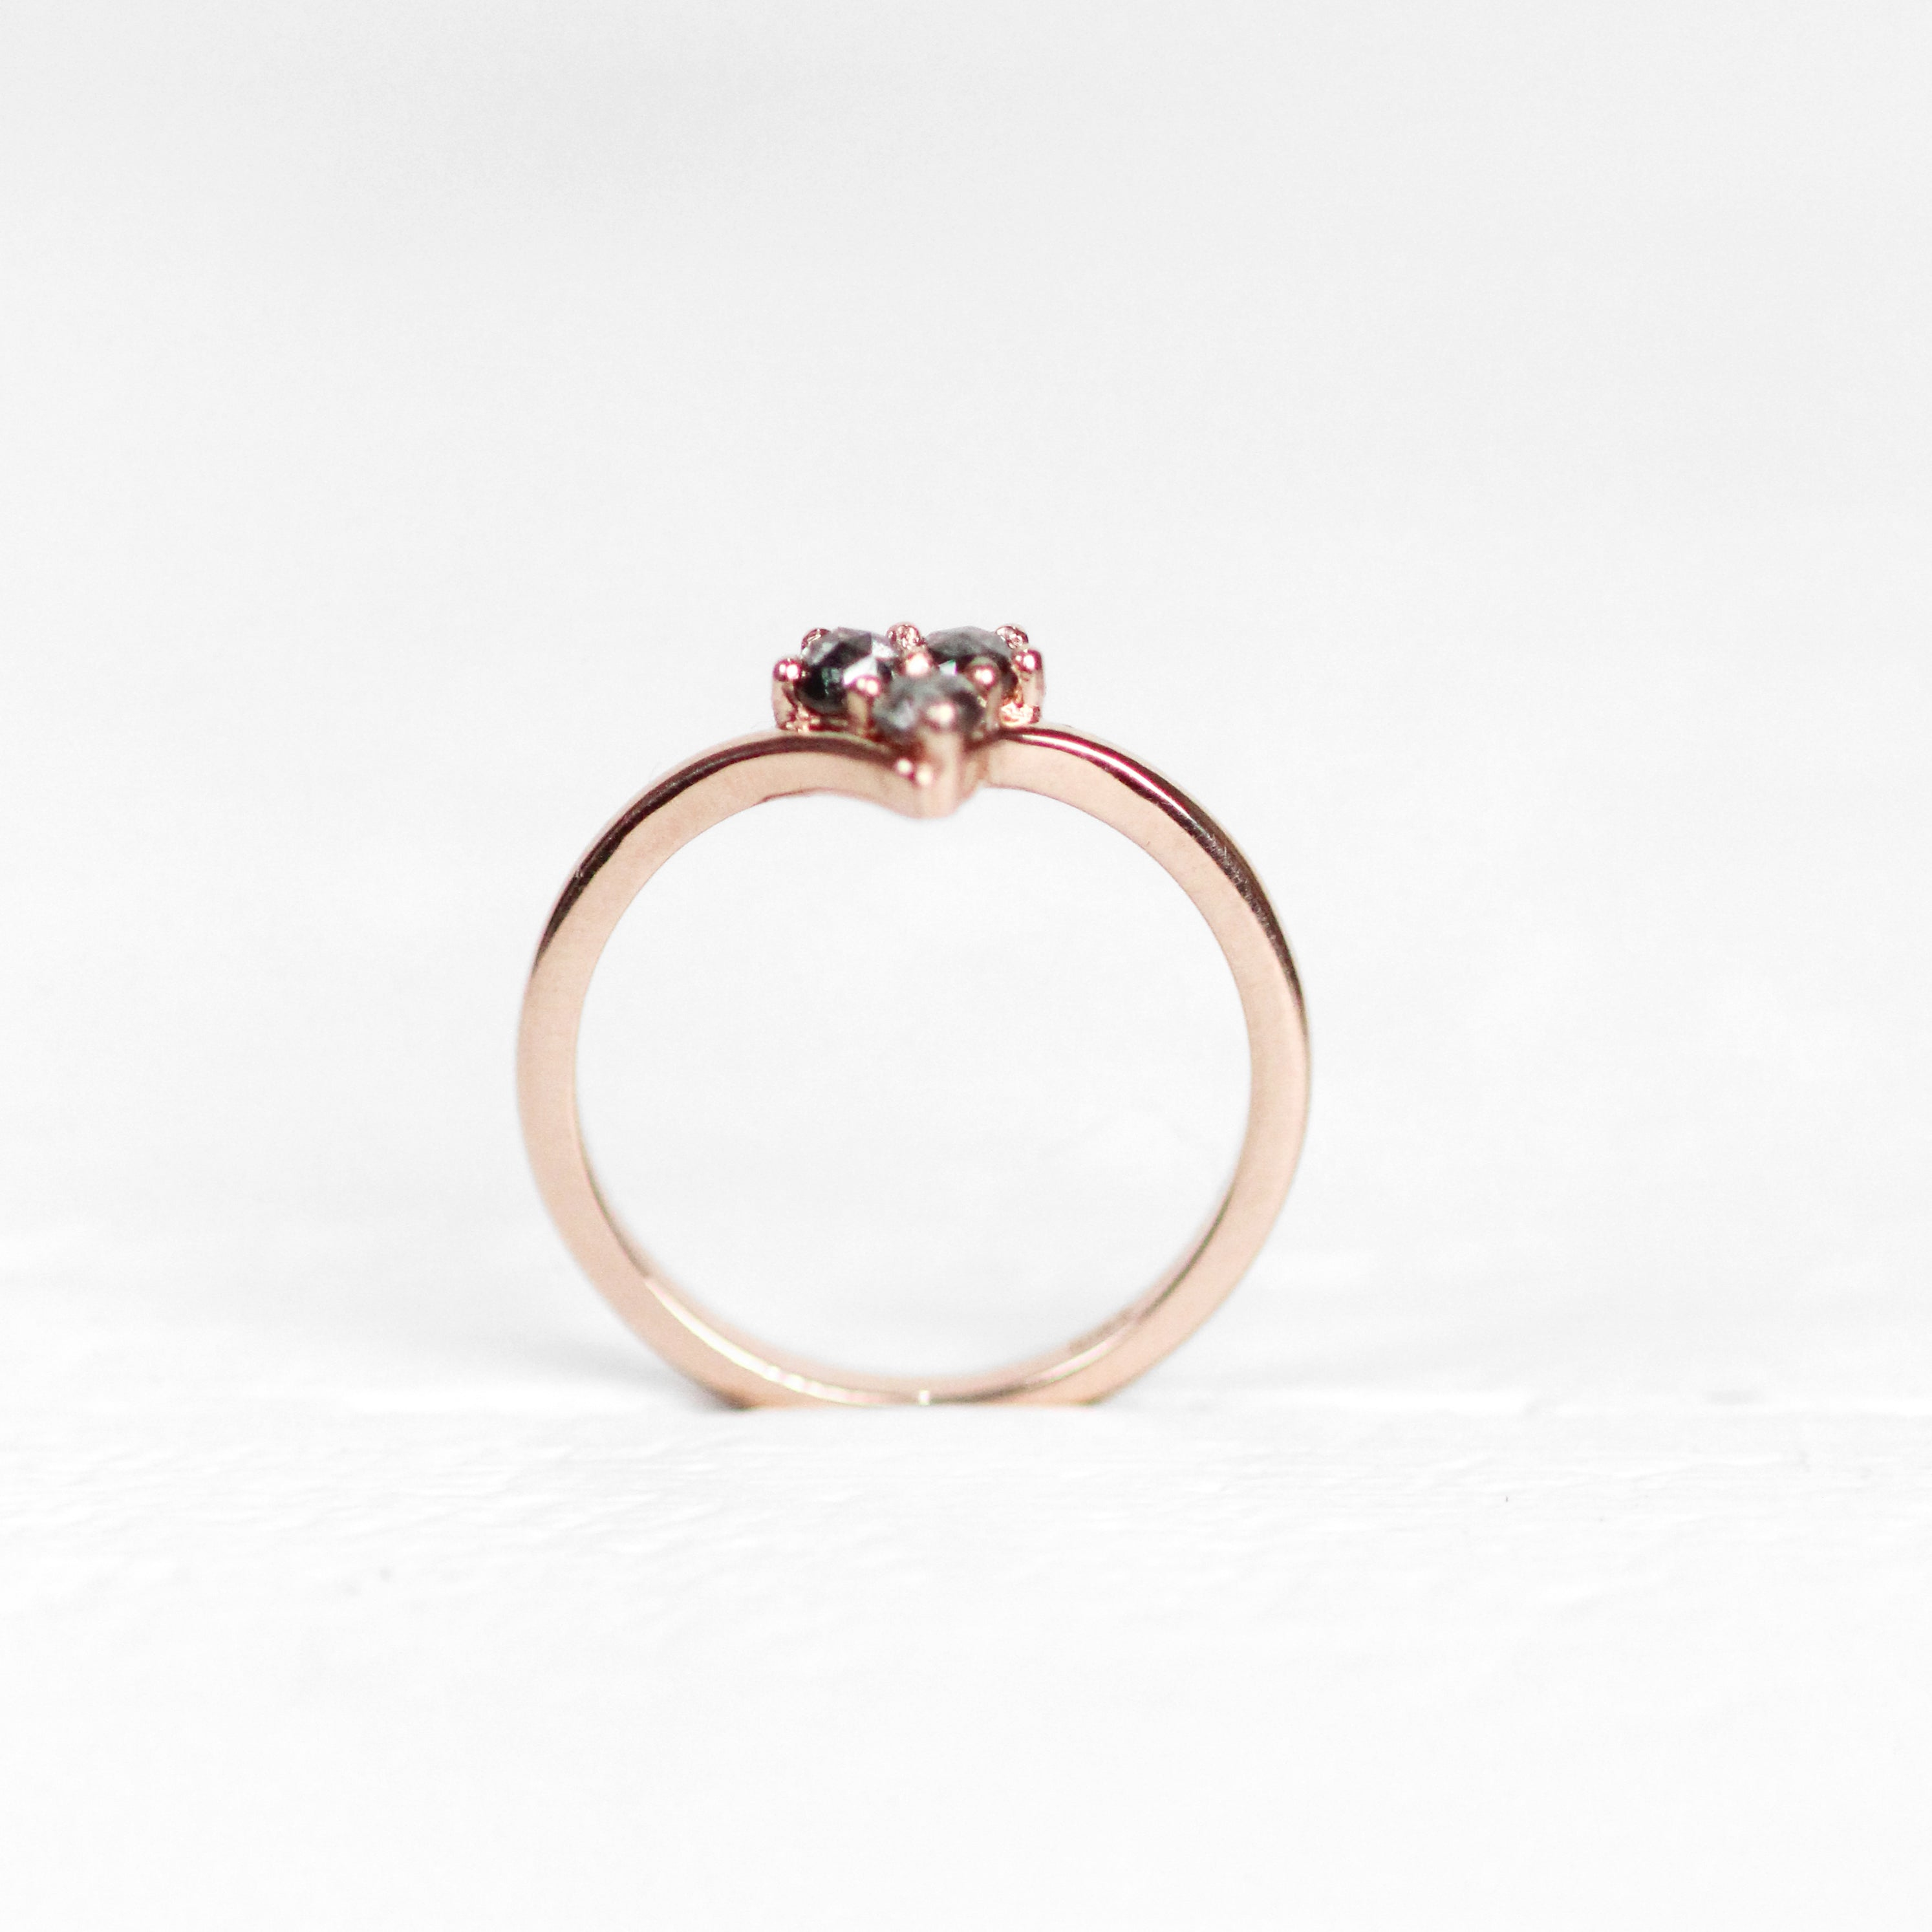 Madelyn Ring - Trio of Rose Cut Diamonds - Gold of choice - Celestial Diamonds ® by Midwinter Co.